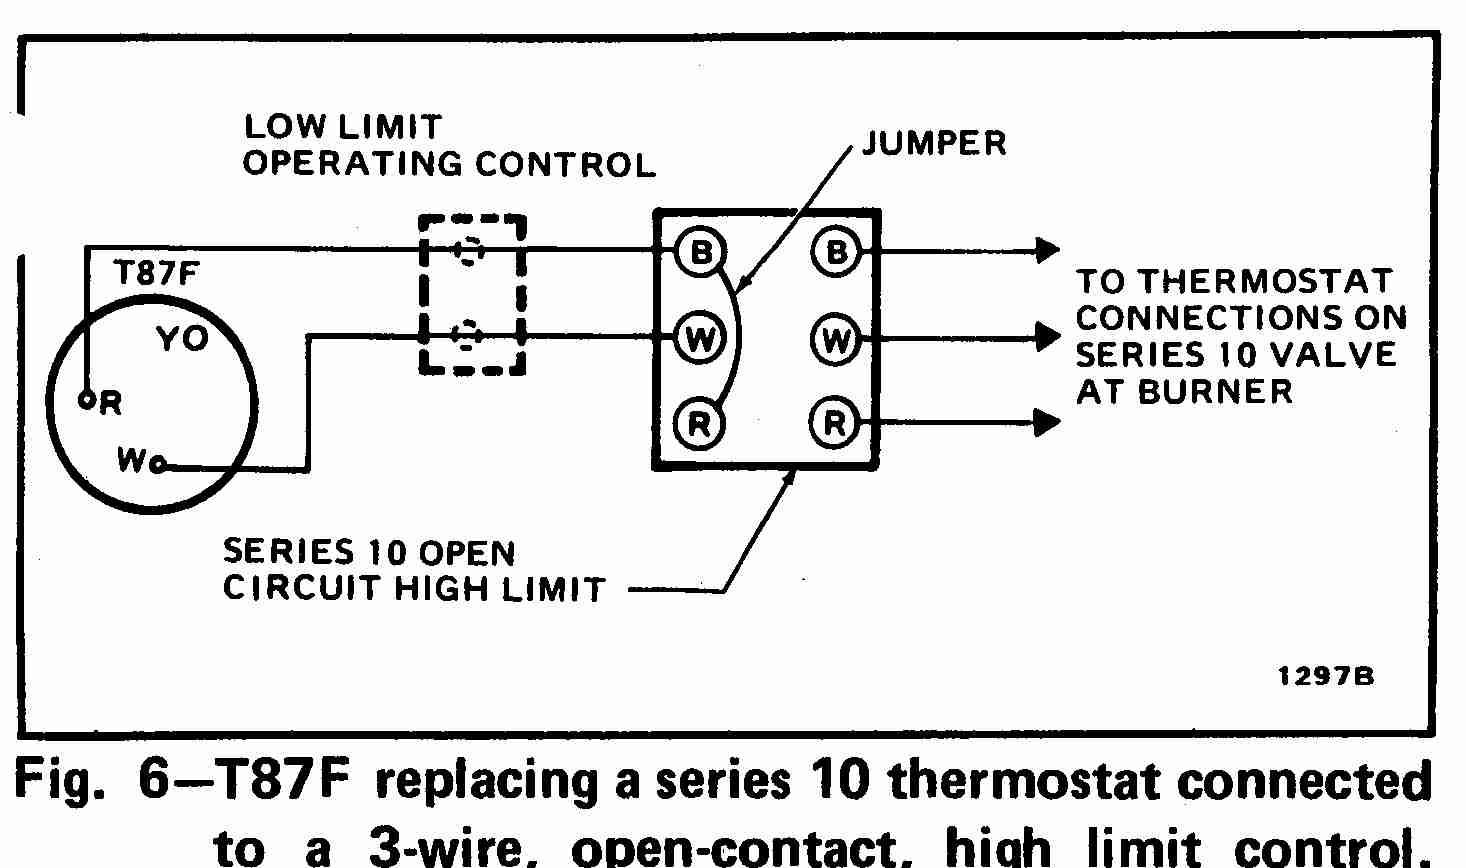 tstat wiring diagram find wiring diagram u2022 rh empcom co thermostat wiring colors honeywell thermostat wiring colors code 7 wires